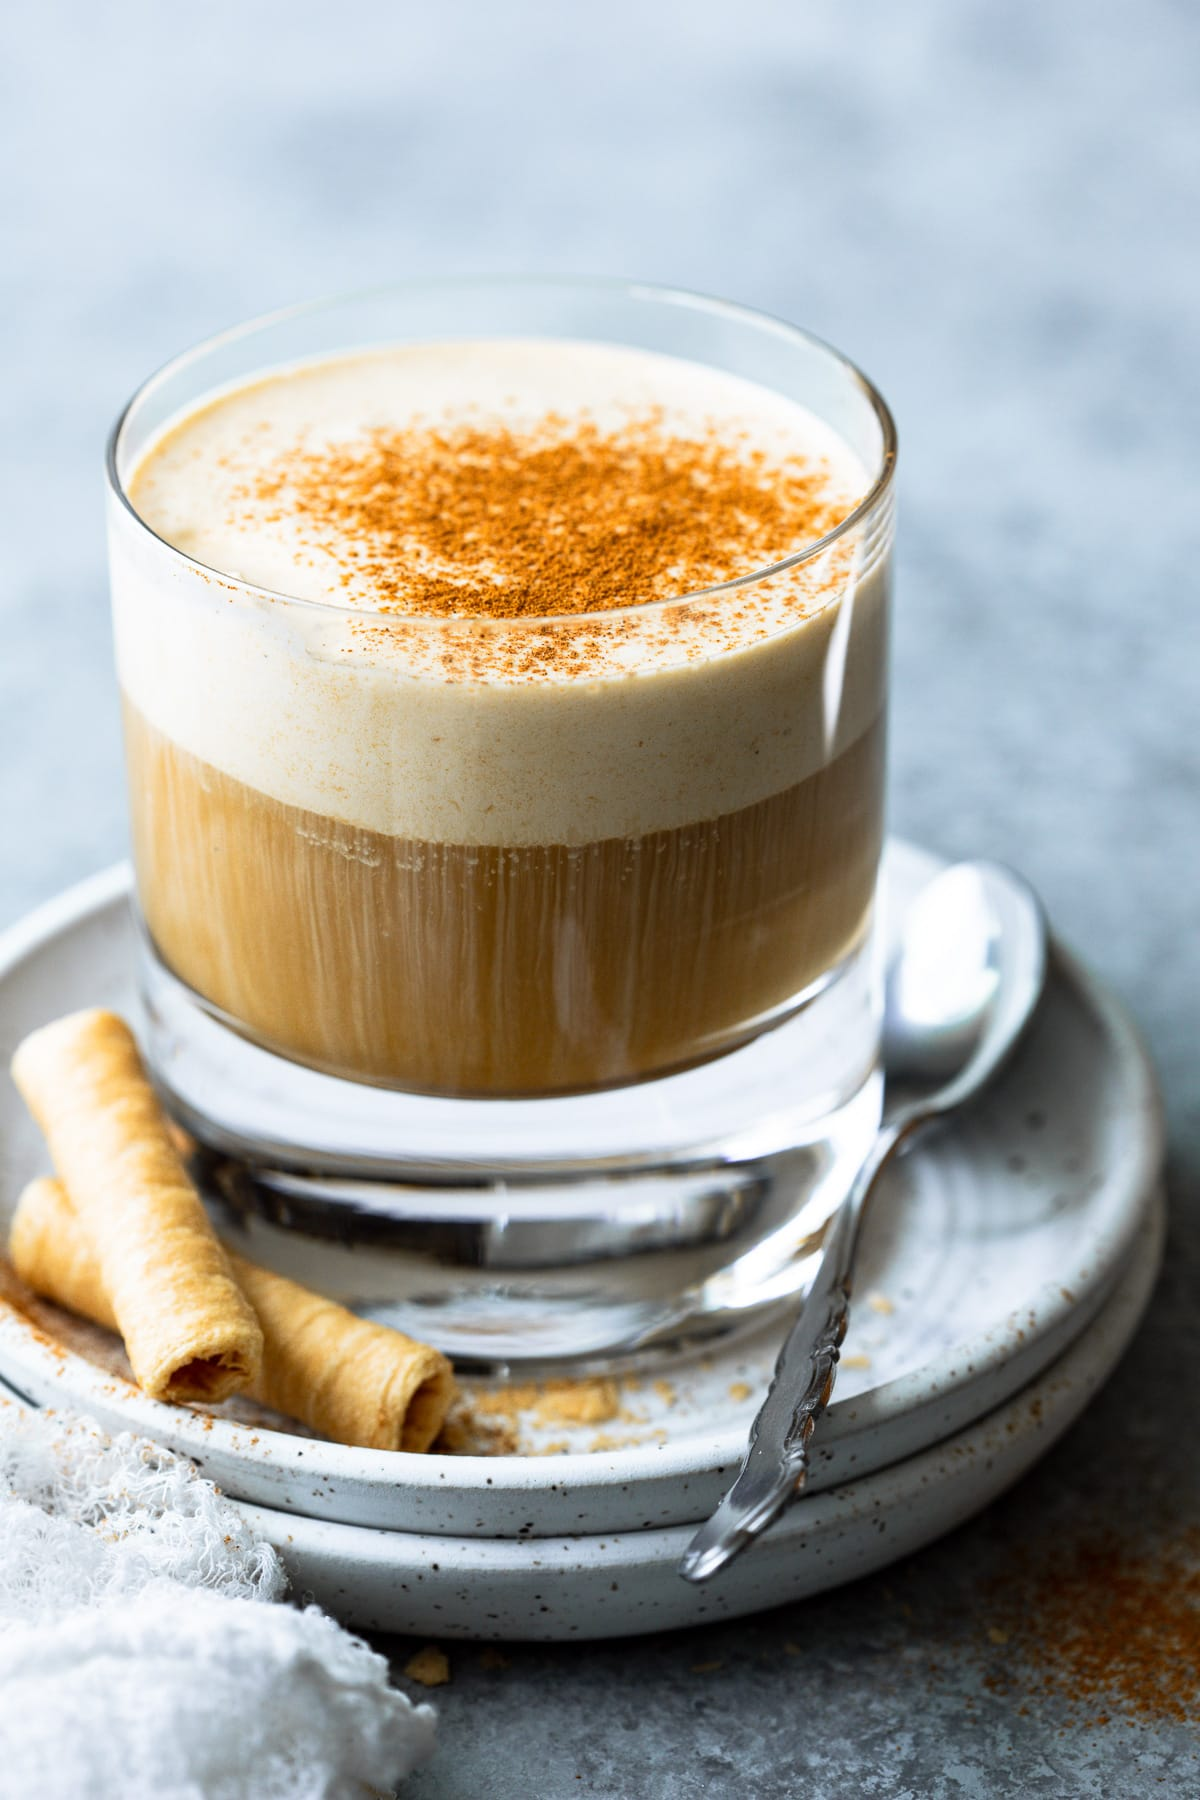 Coffee with pumpkin cold foam in a glass, on top of two stacked plates.